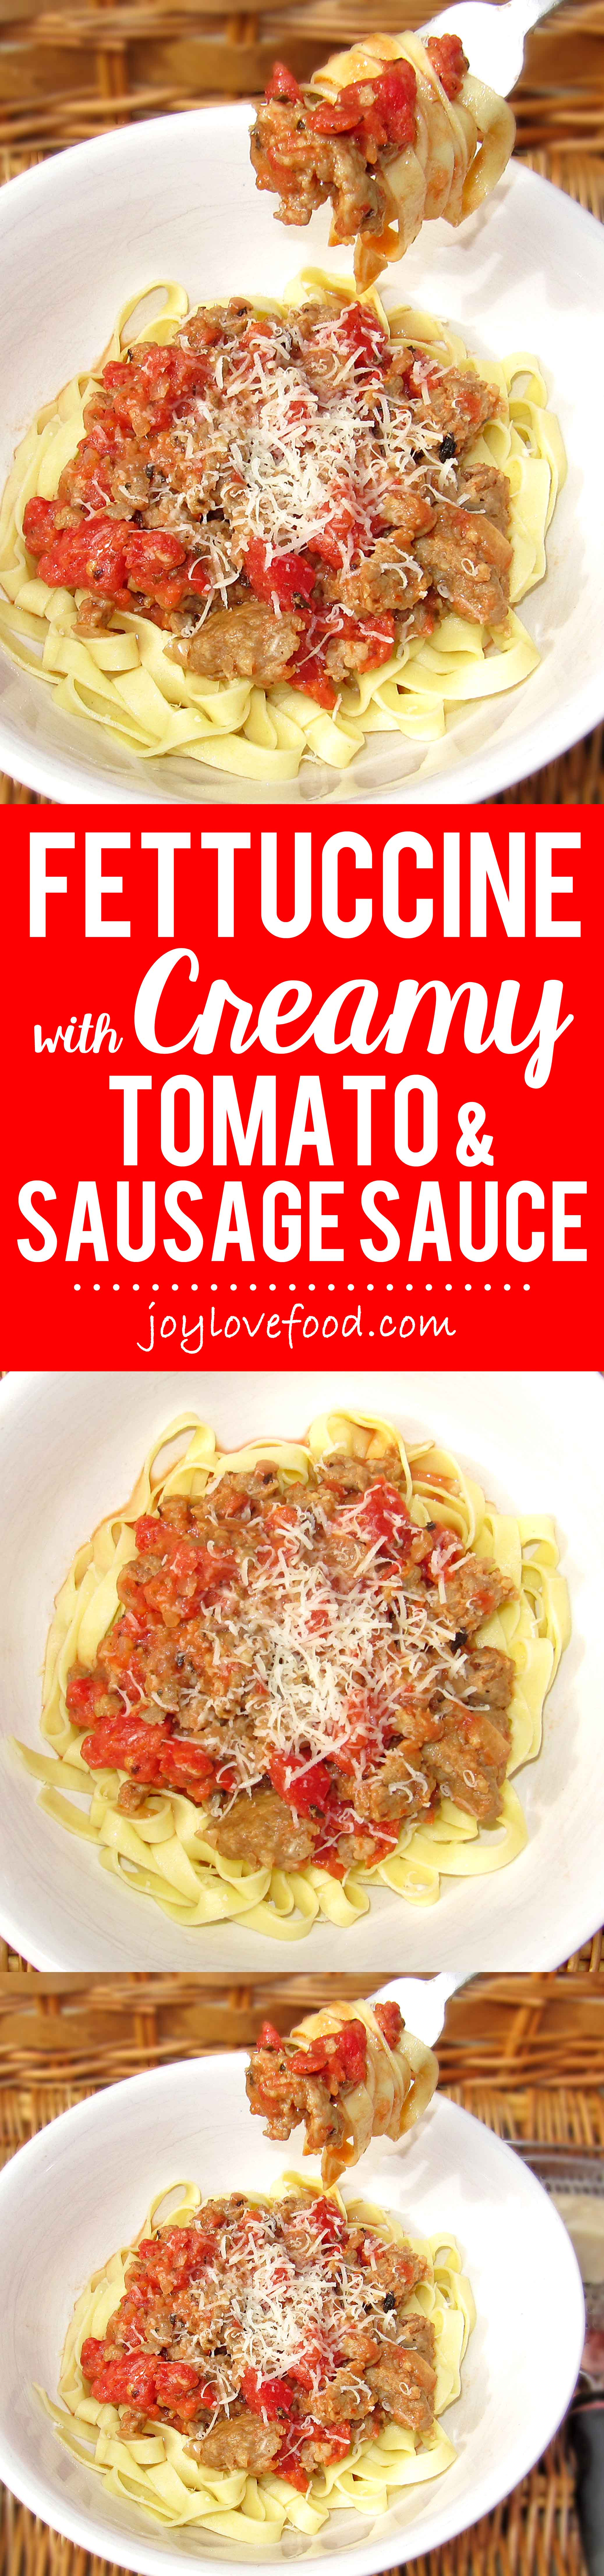 Fettuccine with Creamy Tomato and Sausage Sauce - Joy Love ...